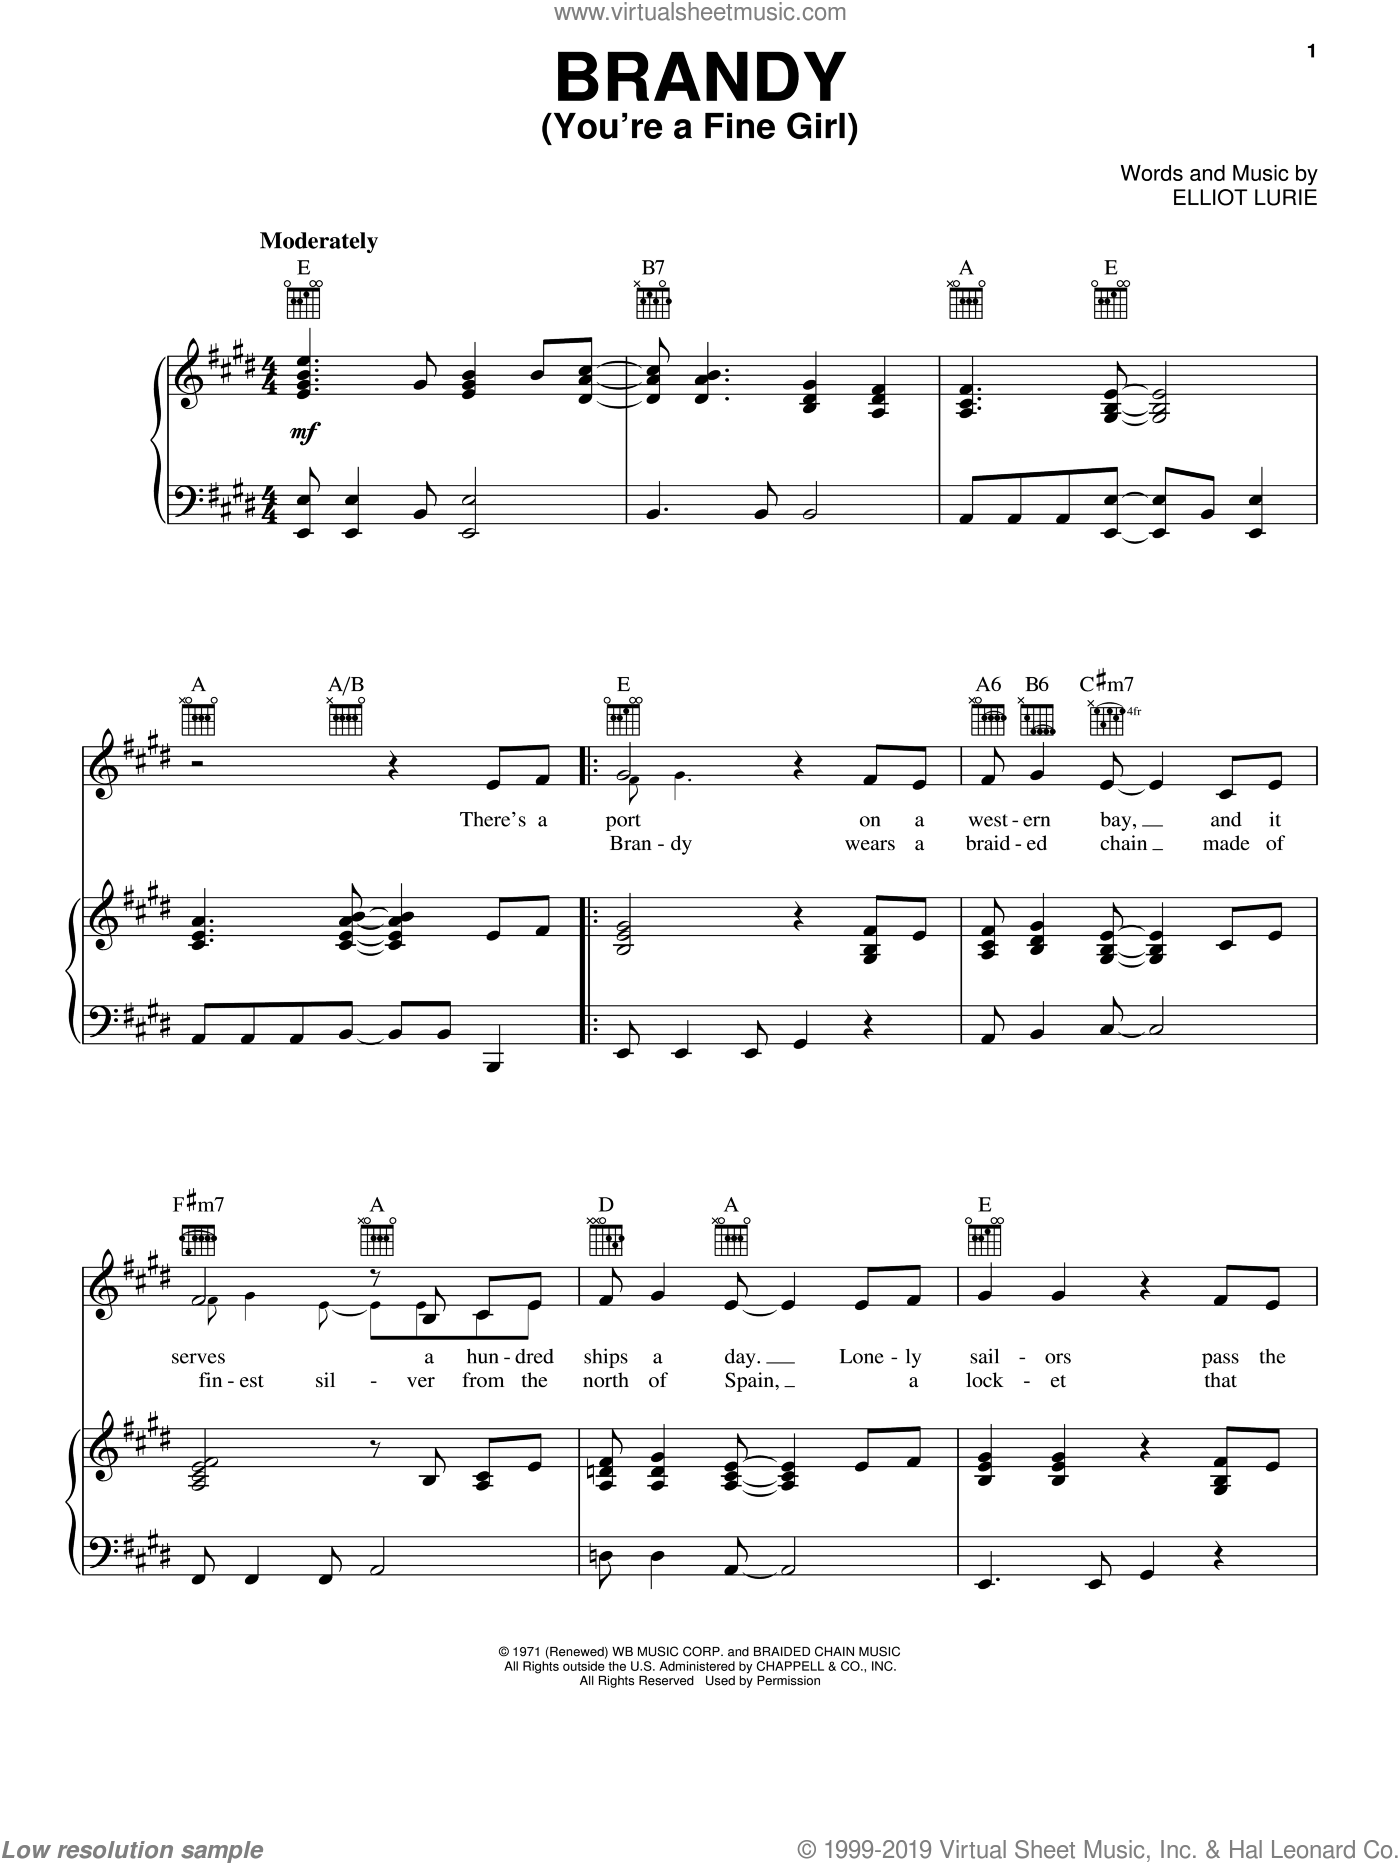 Brandy (You're A Fine Girl) sheet music for voice, piano or guitar by Looking Glass and Elliot Lurie, intermediate skill level